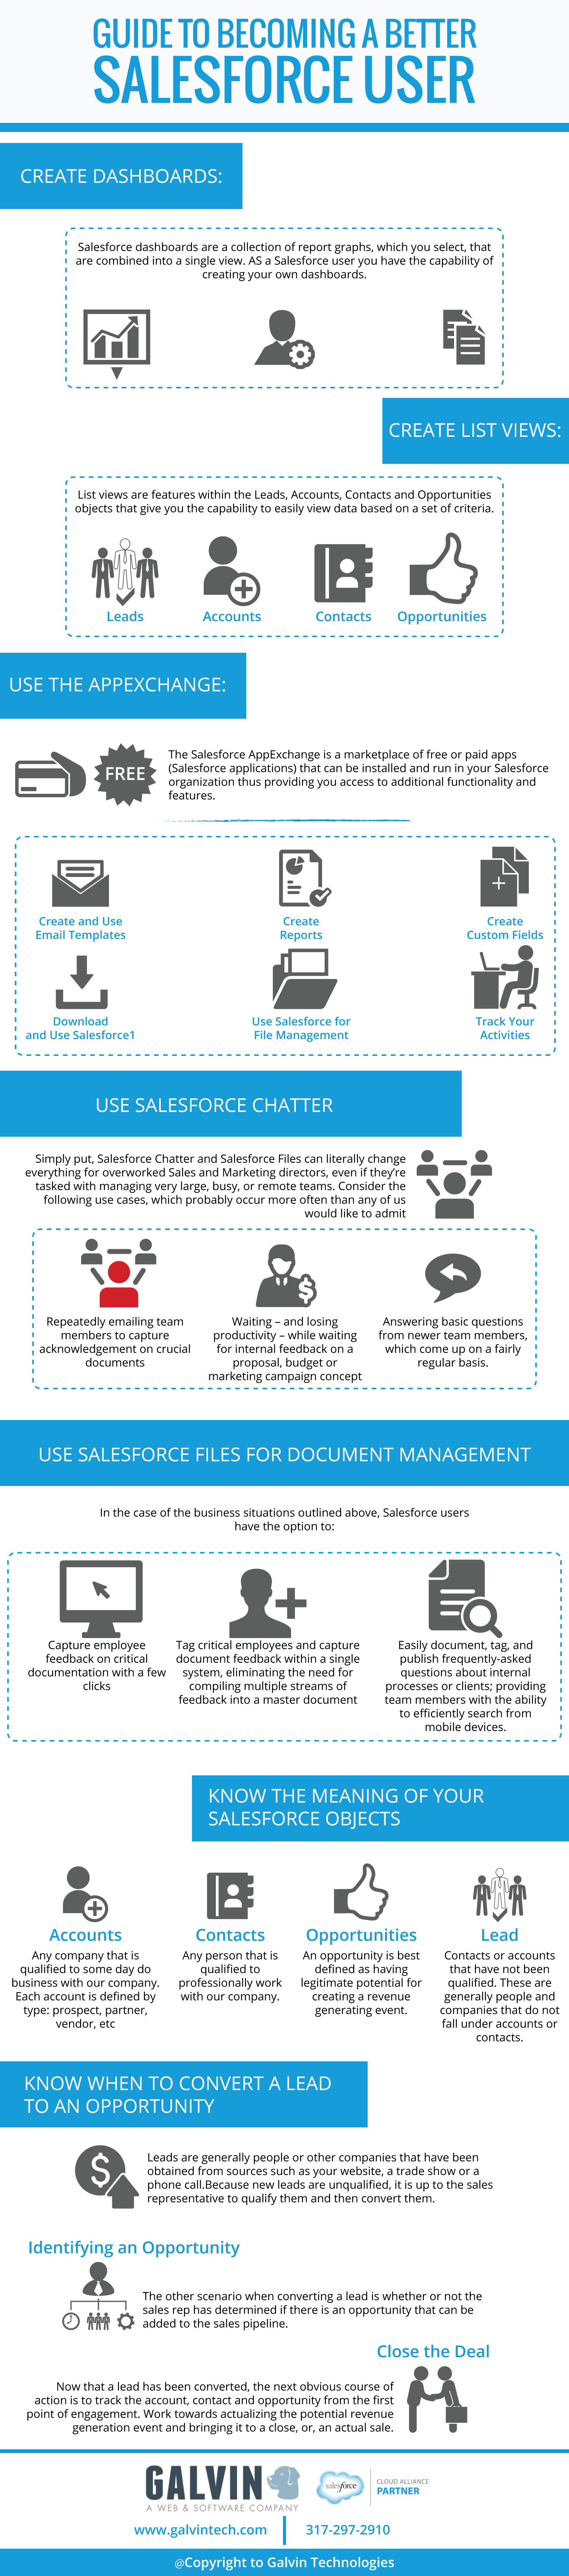 Guide-to-Becoming-a-Better-Salesforce-User-Infographic